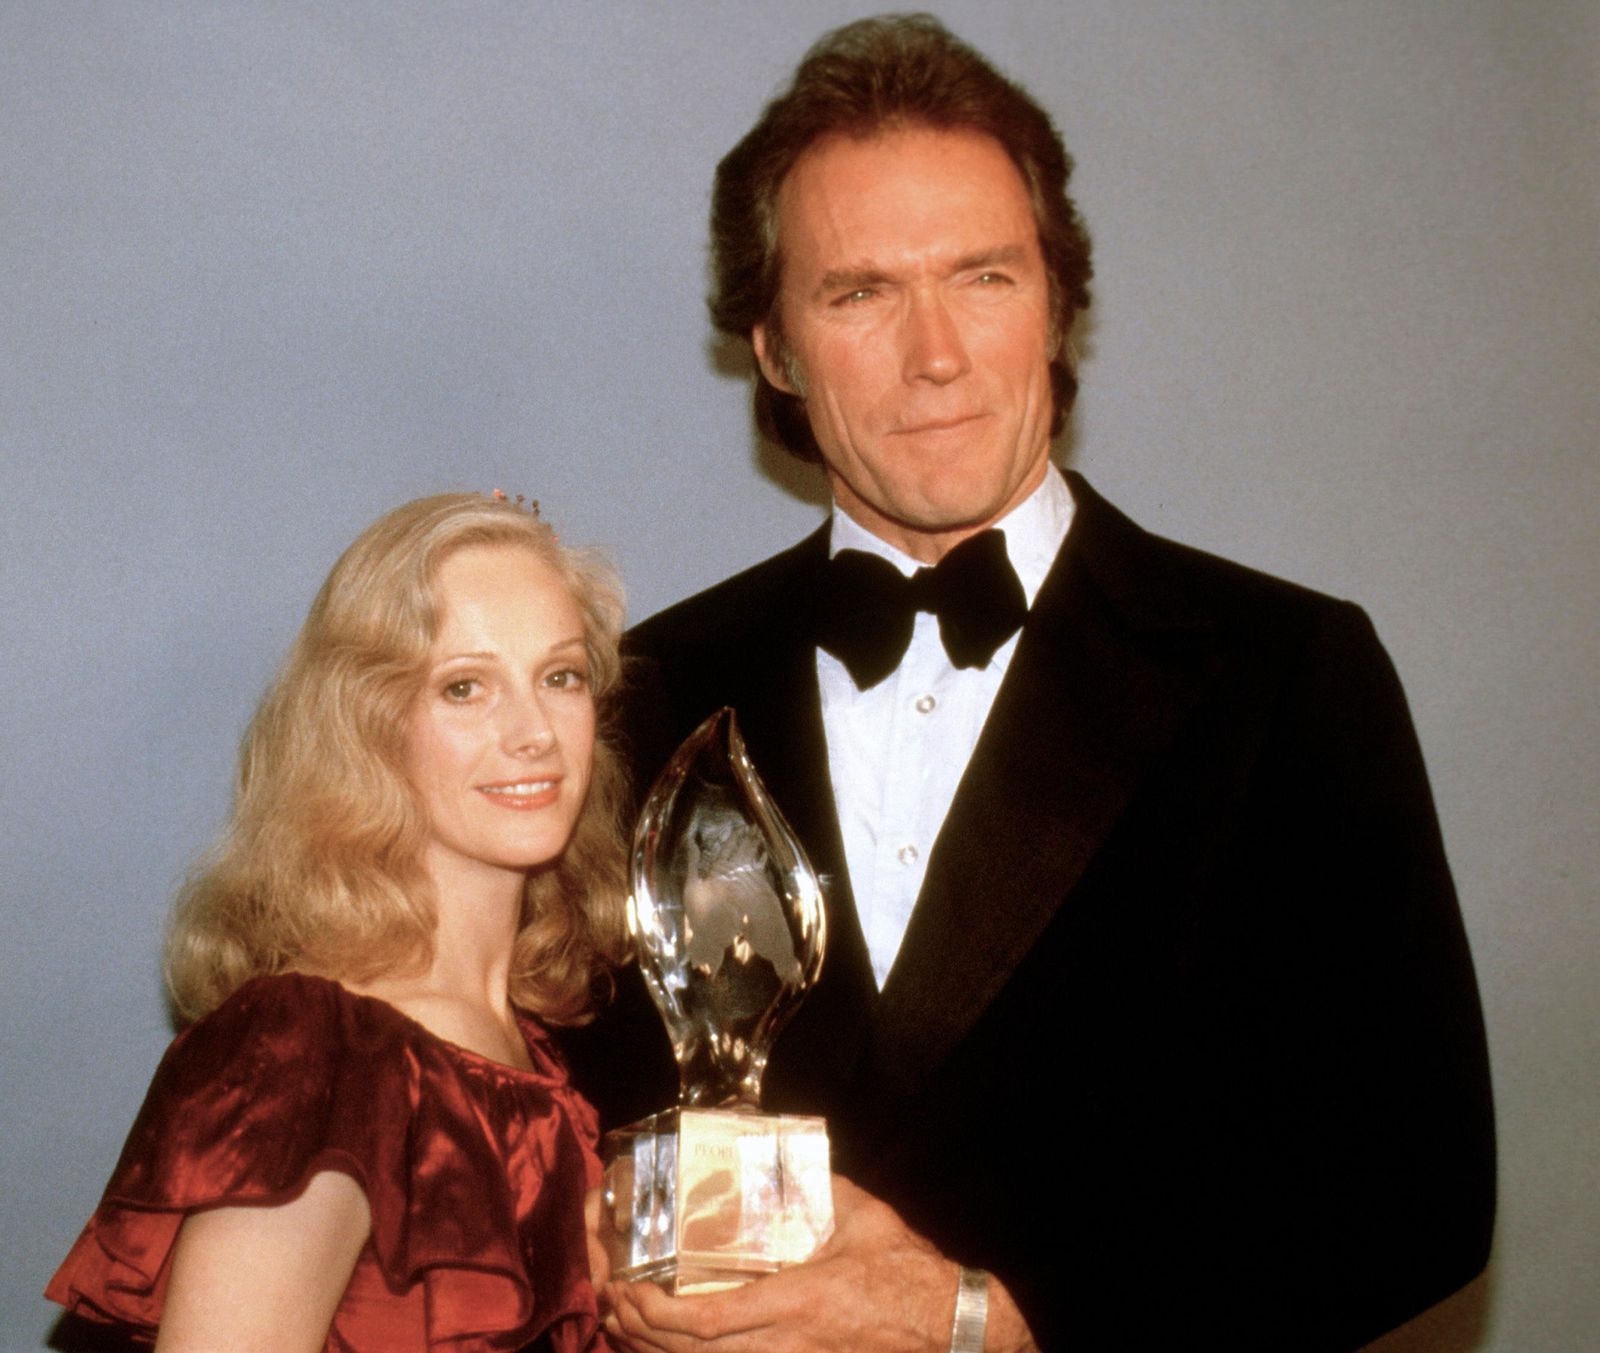 FILE - In this March 5, 1981 file photo, Clint Eastwood poses with his girlfriend Sondra Locke, left, and his People's Choice Award for favorite motion picture actor in Los Angeles. (AP Photo, File)